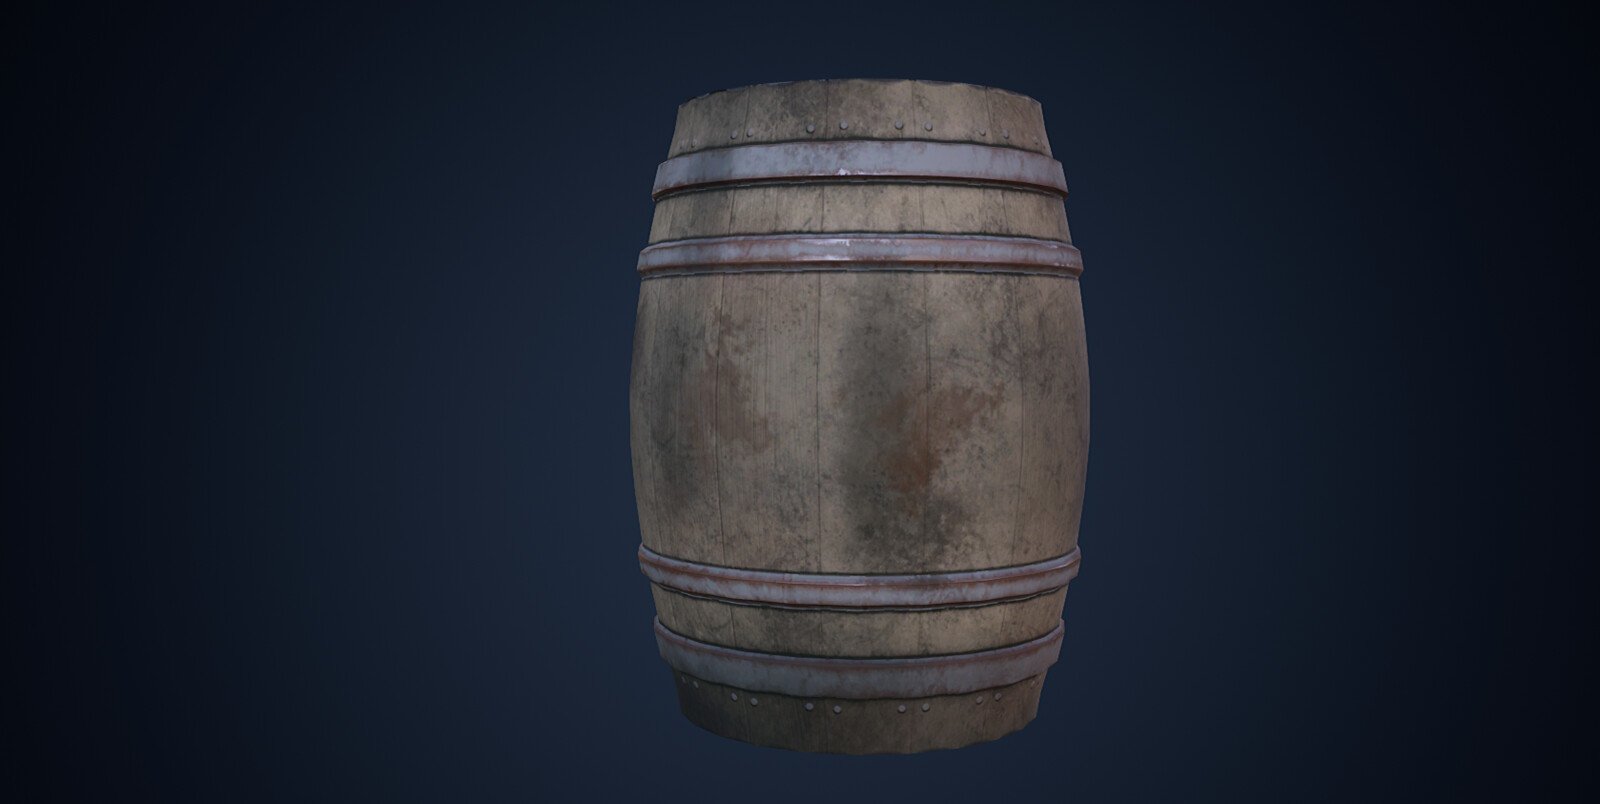 A Barrel (Painted with Substance)